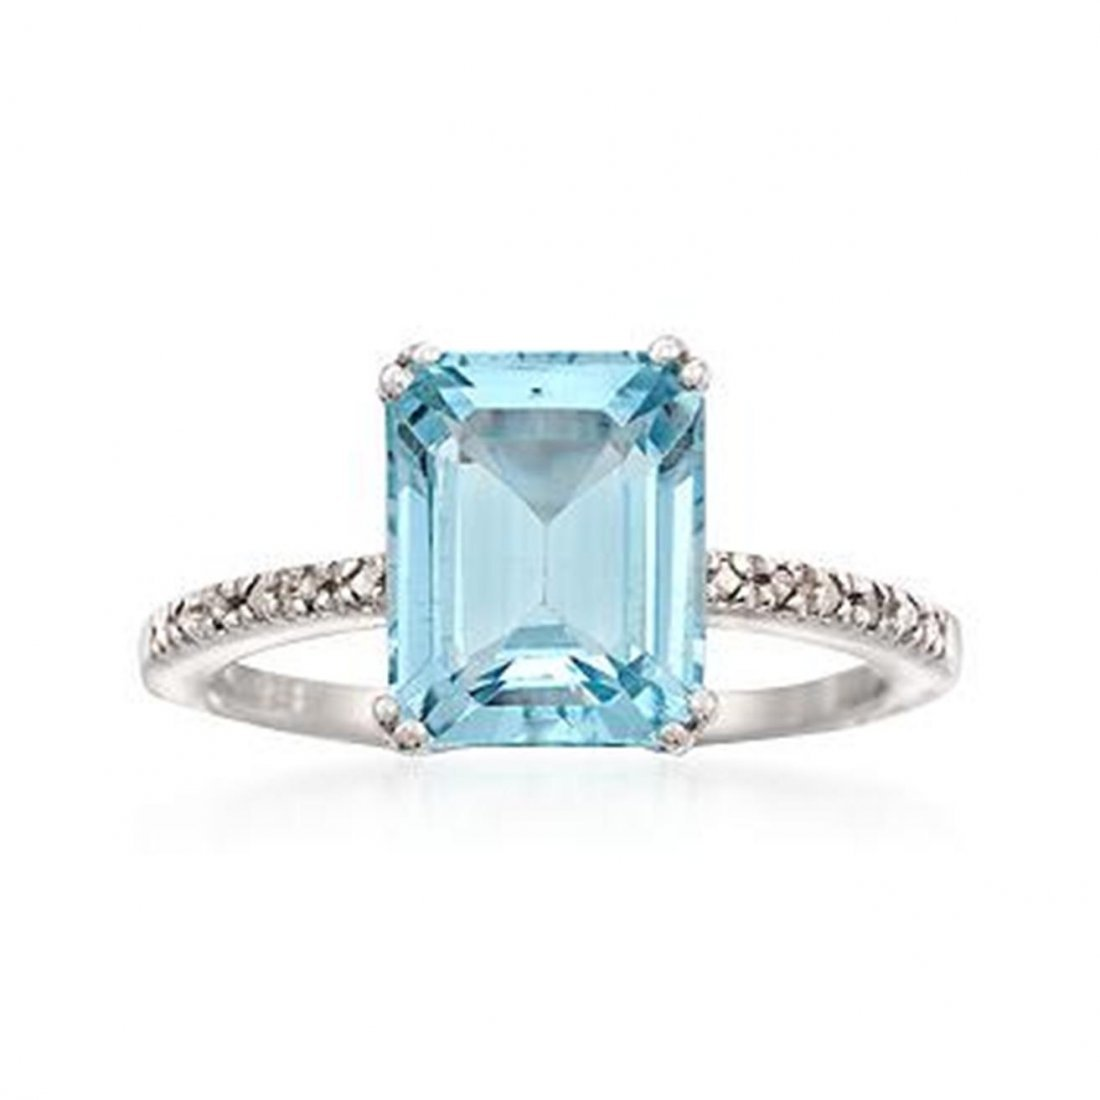 4.40 Carat Emerald-Cut Blue Topaz Ring With Diamor